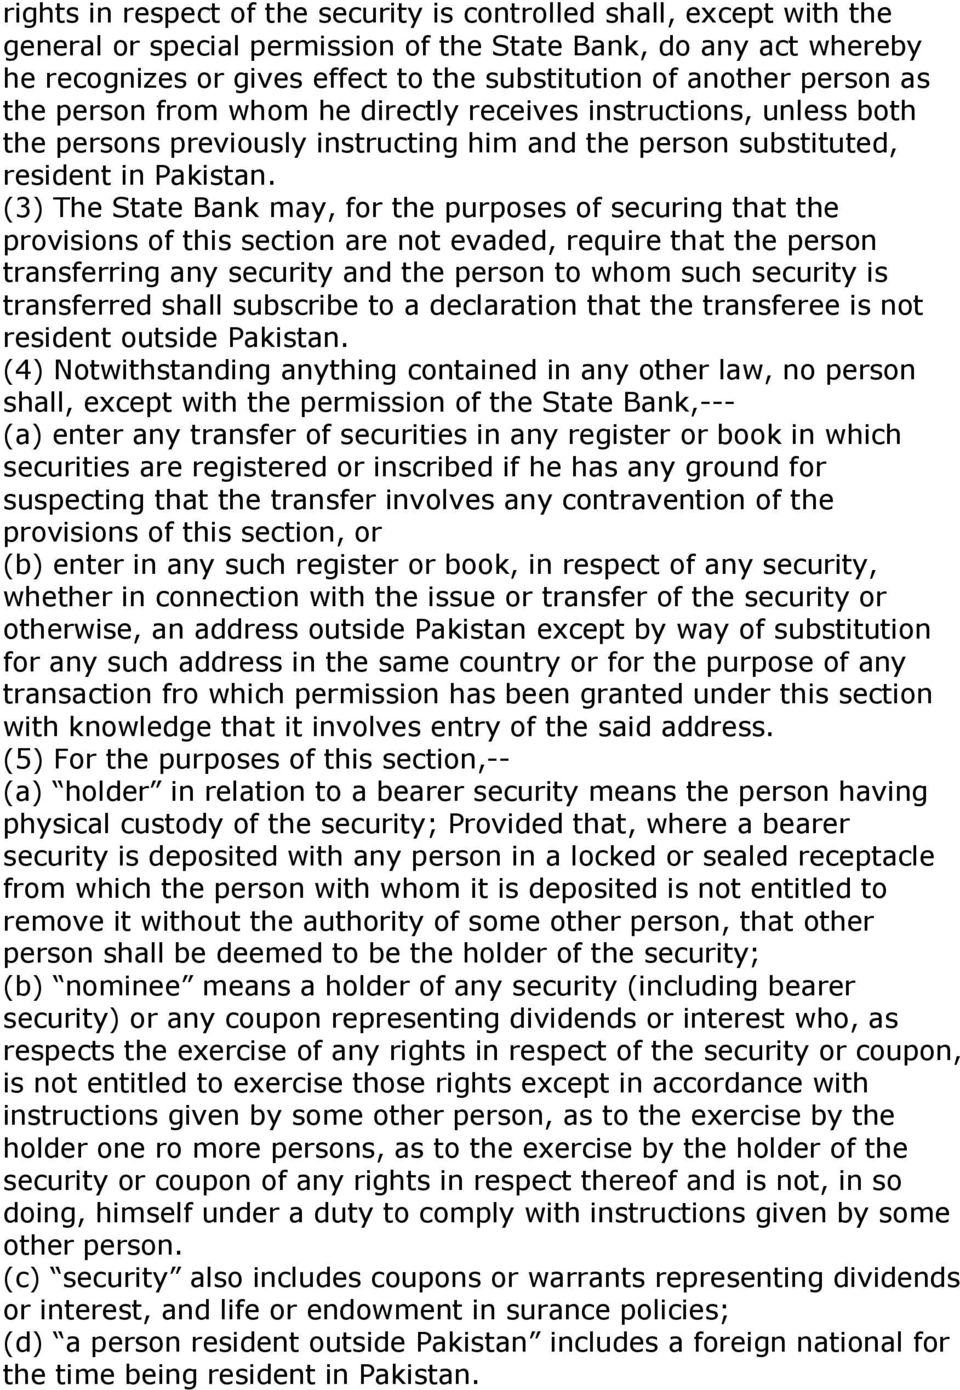 (3) The State Bank may, for the purposes of securing that the provisions of this section are not evaded, require that the person transferring any security and the person to whom such security is